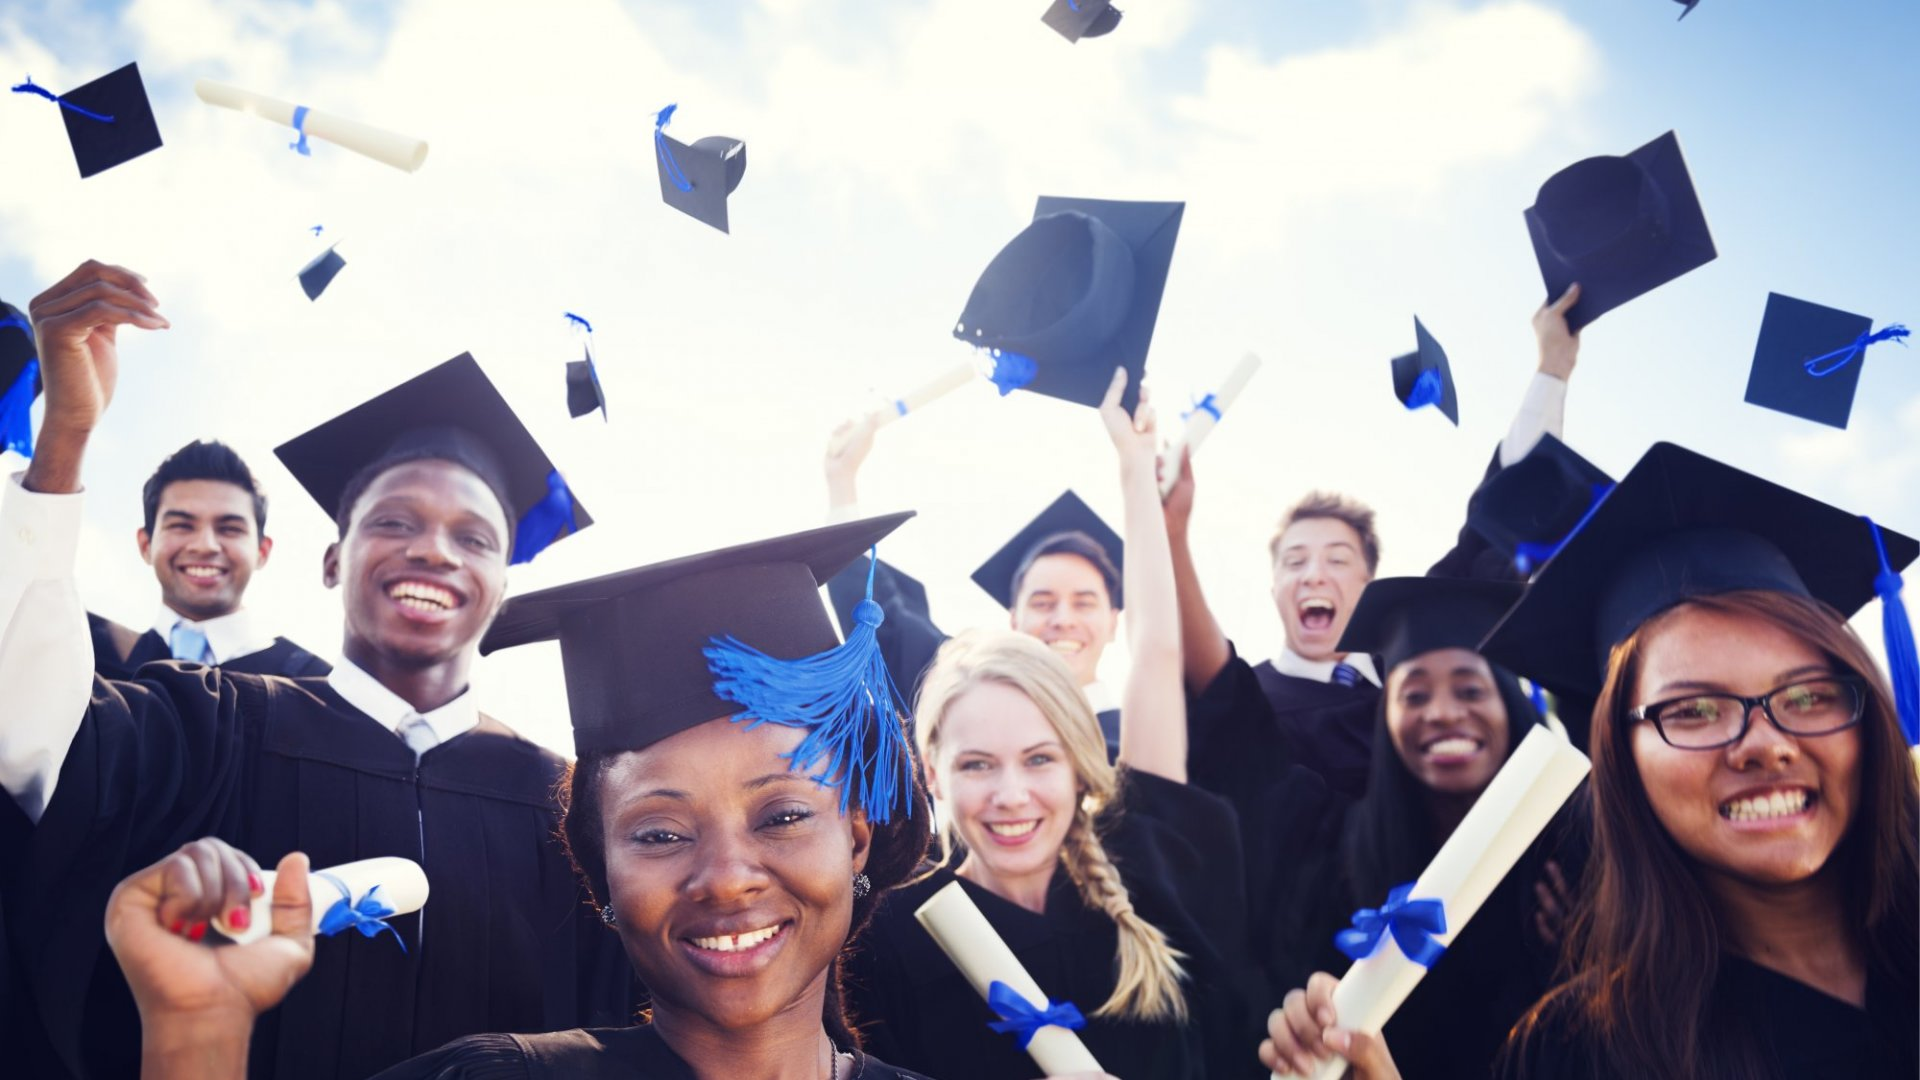 Financial Planner to New Grads: There's a Big Silver Lining to a Low-Paying First Gig